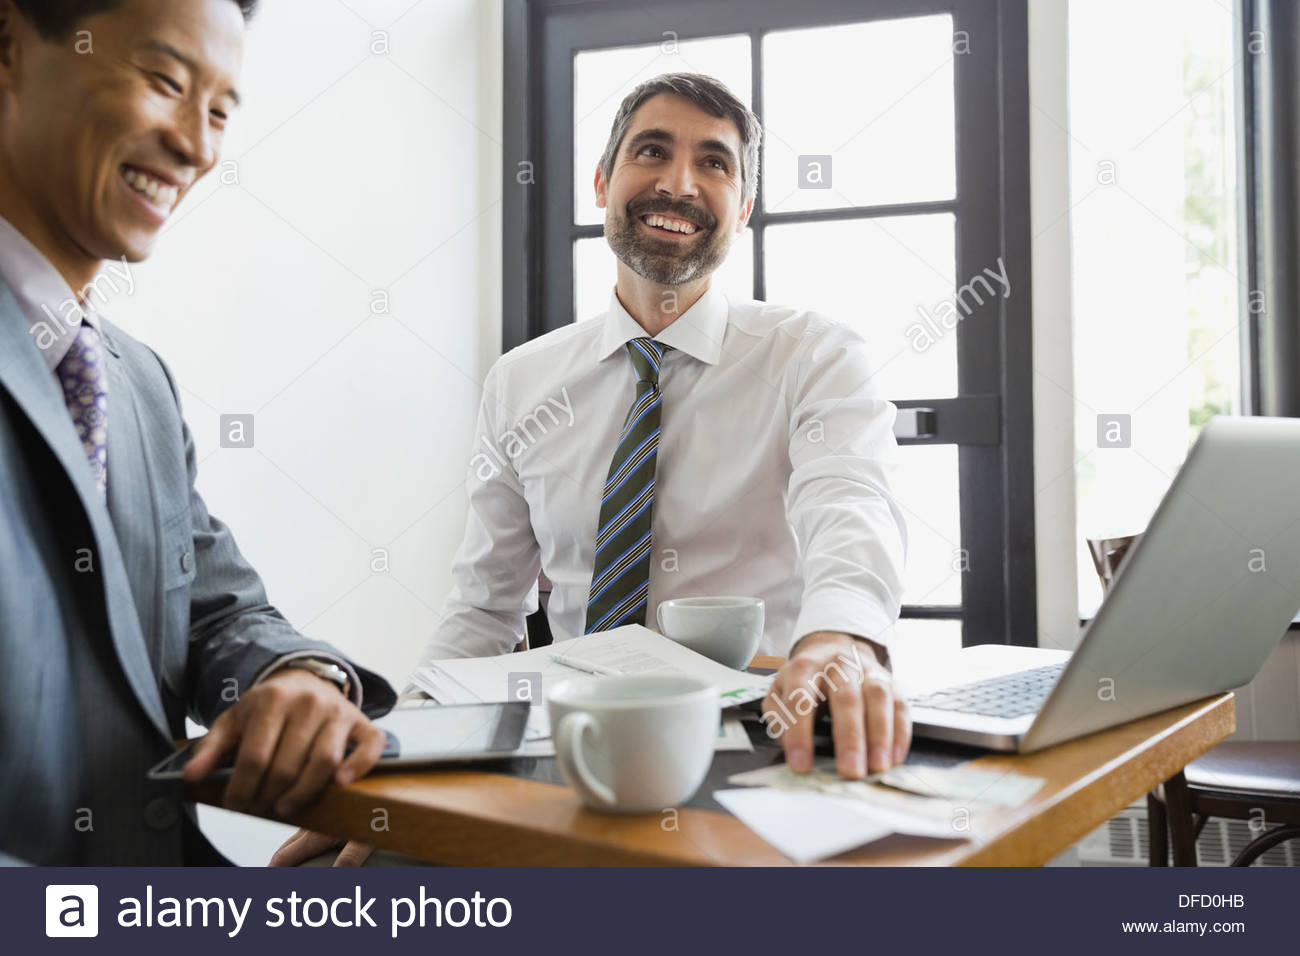 Businessmen paying restaurant bill with cash - Stock Image